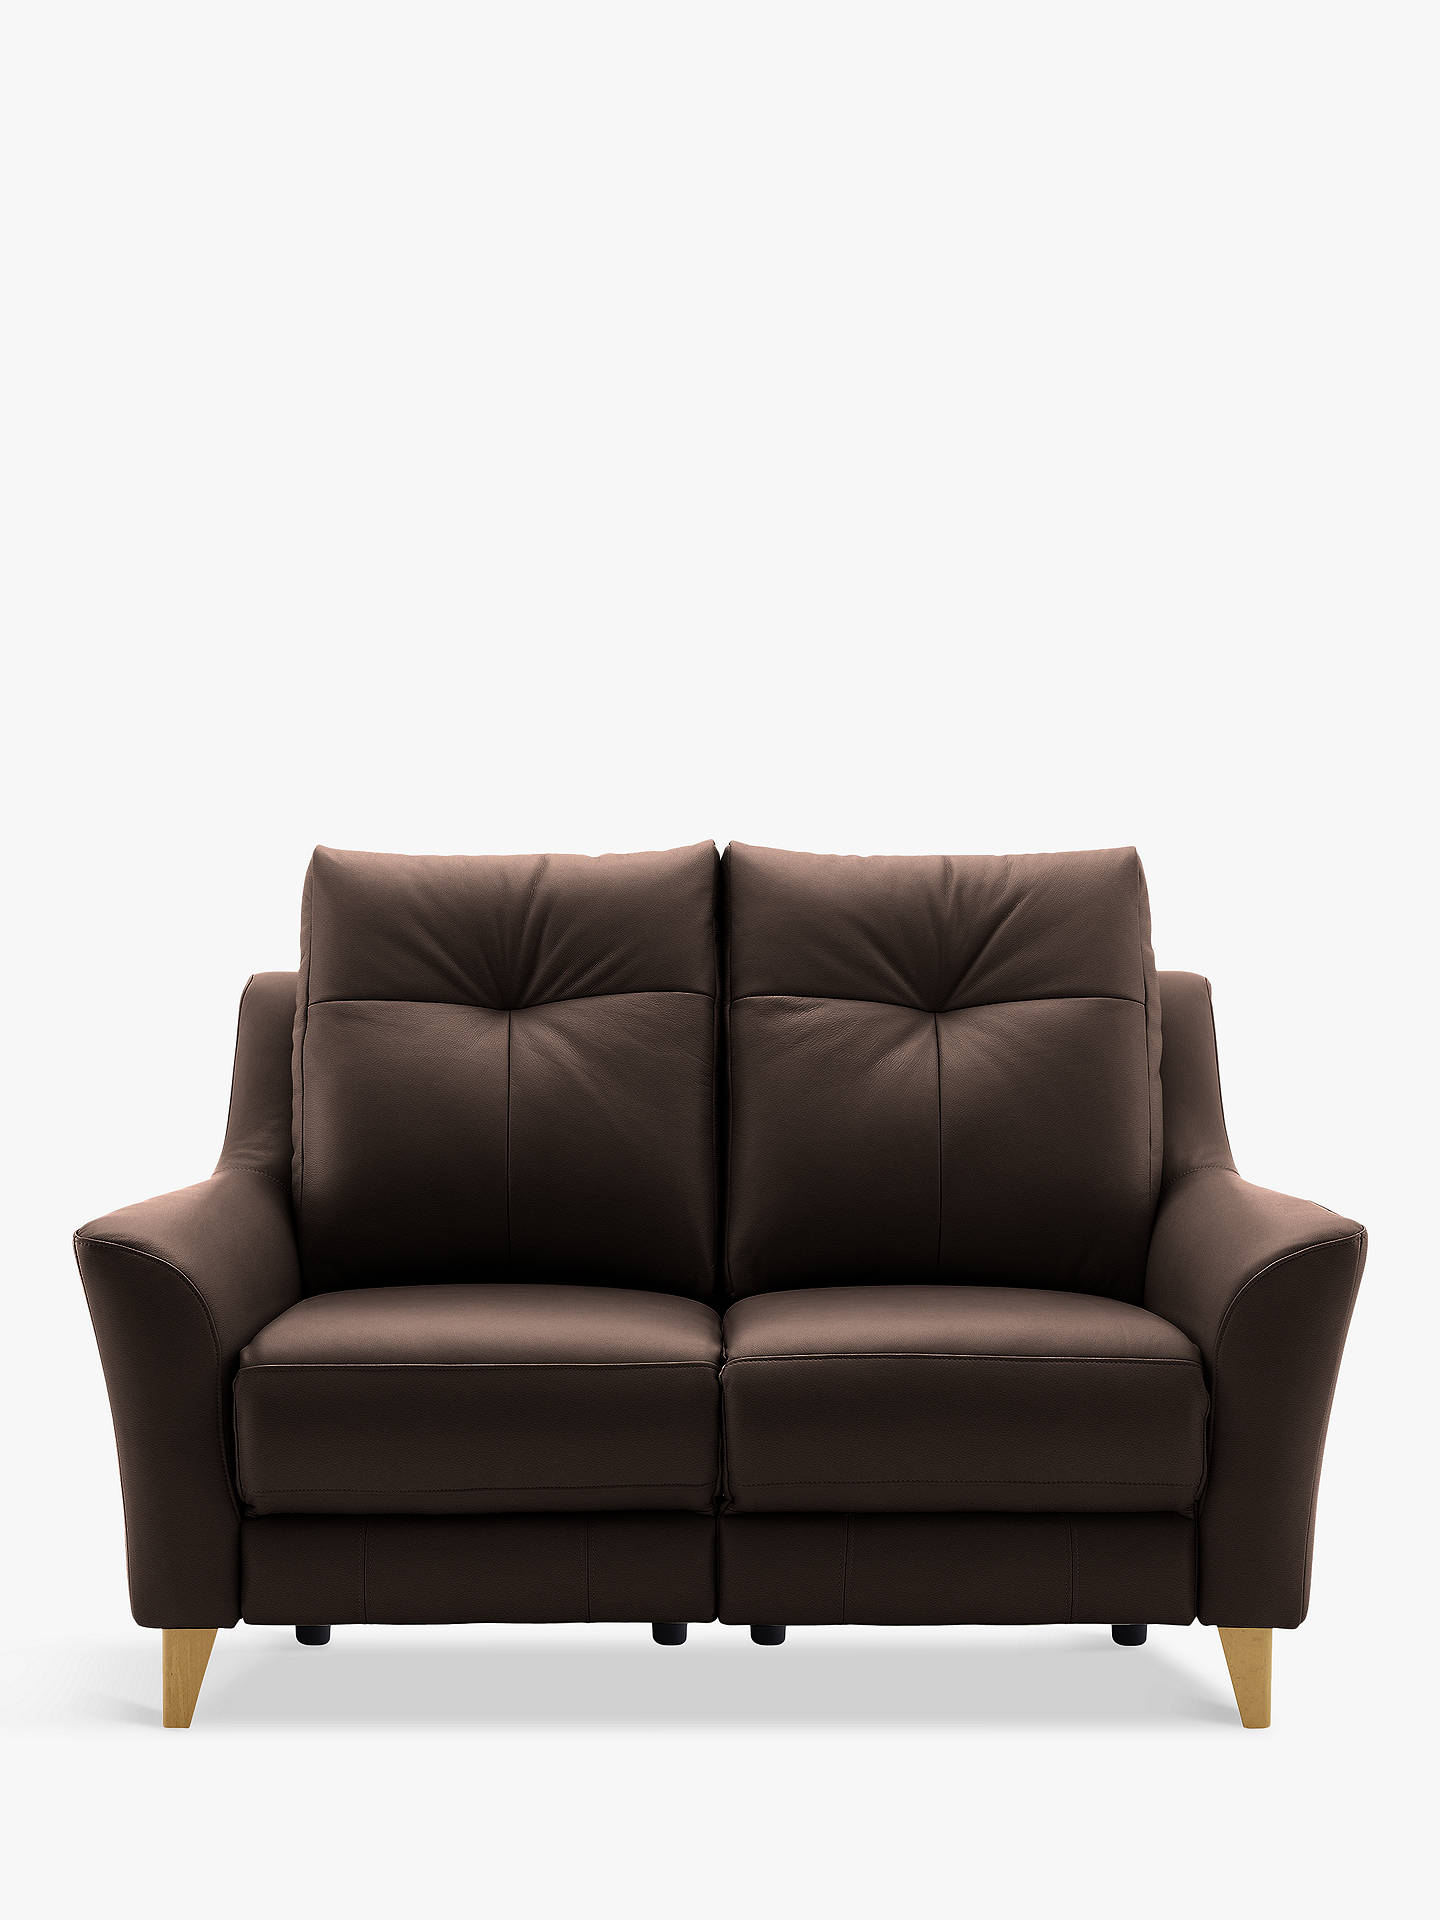 G Plan Hirst Recliner Small 2 Seater Leather Sofa Dreams Buffalo Online At